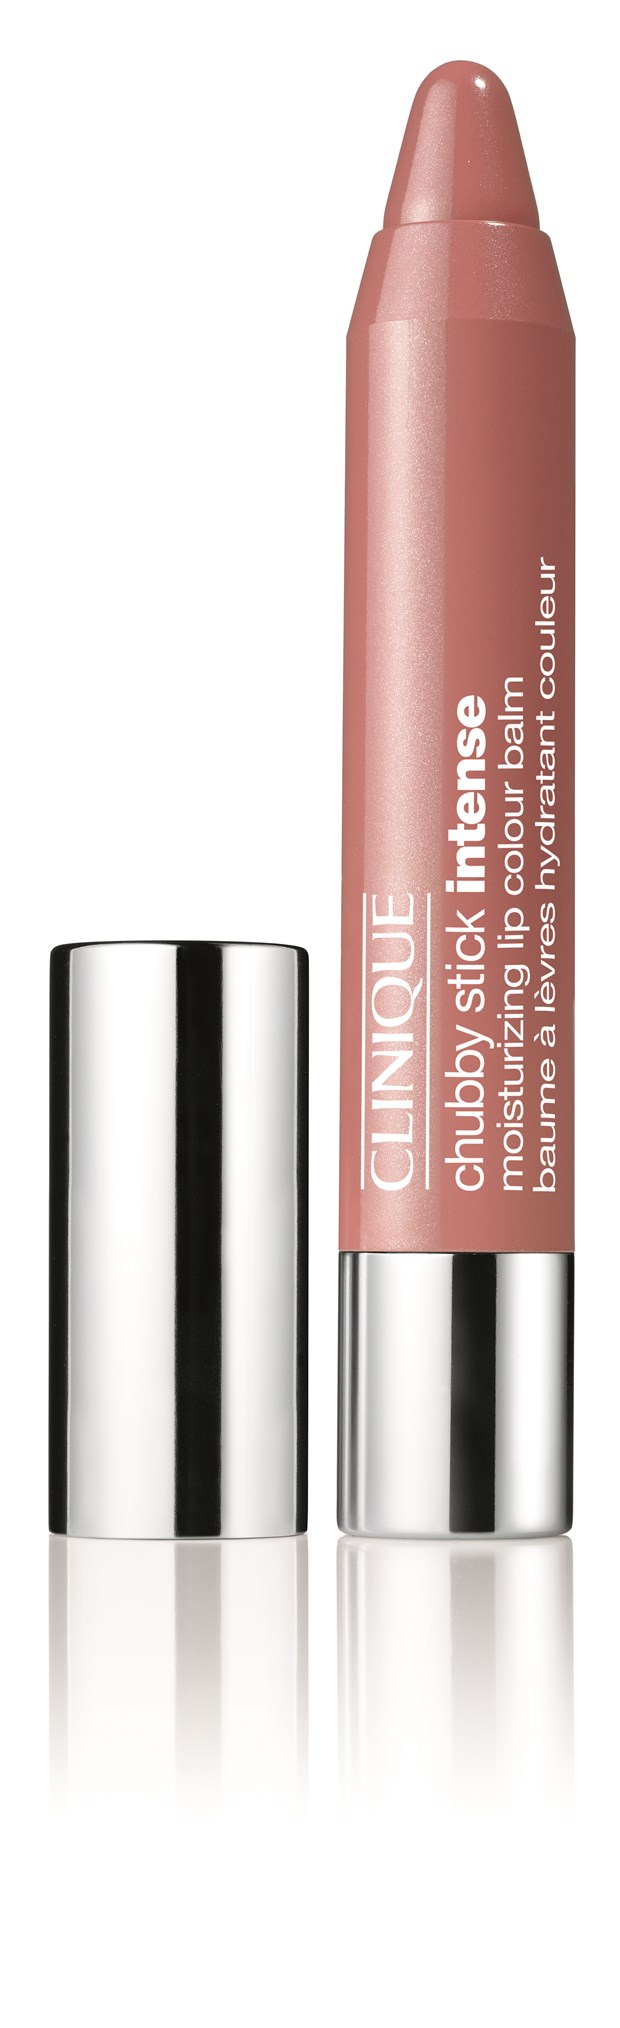 Lip Make-up Chubby Stick Intense Moisturizing Lip Colour Balm